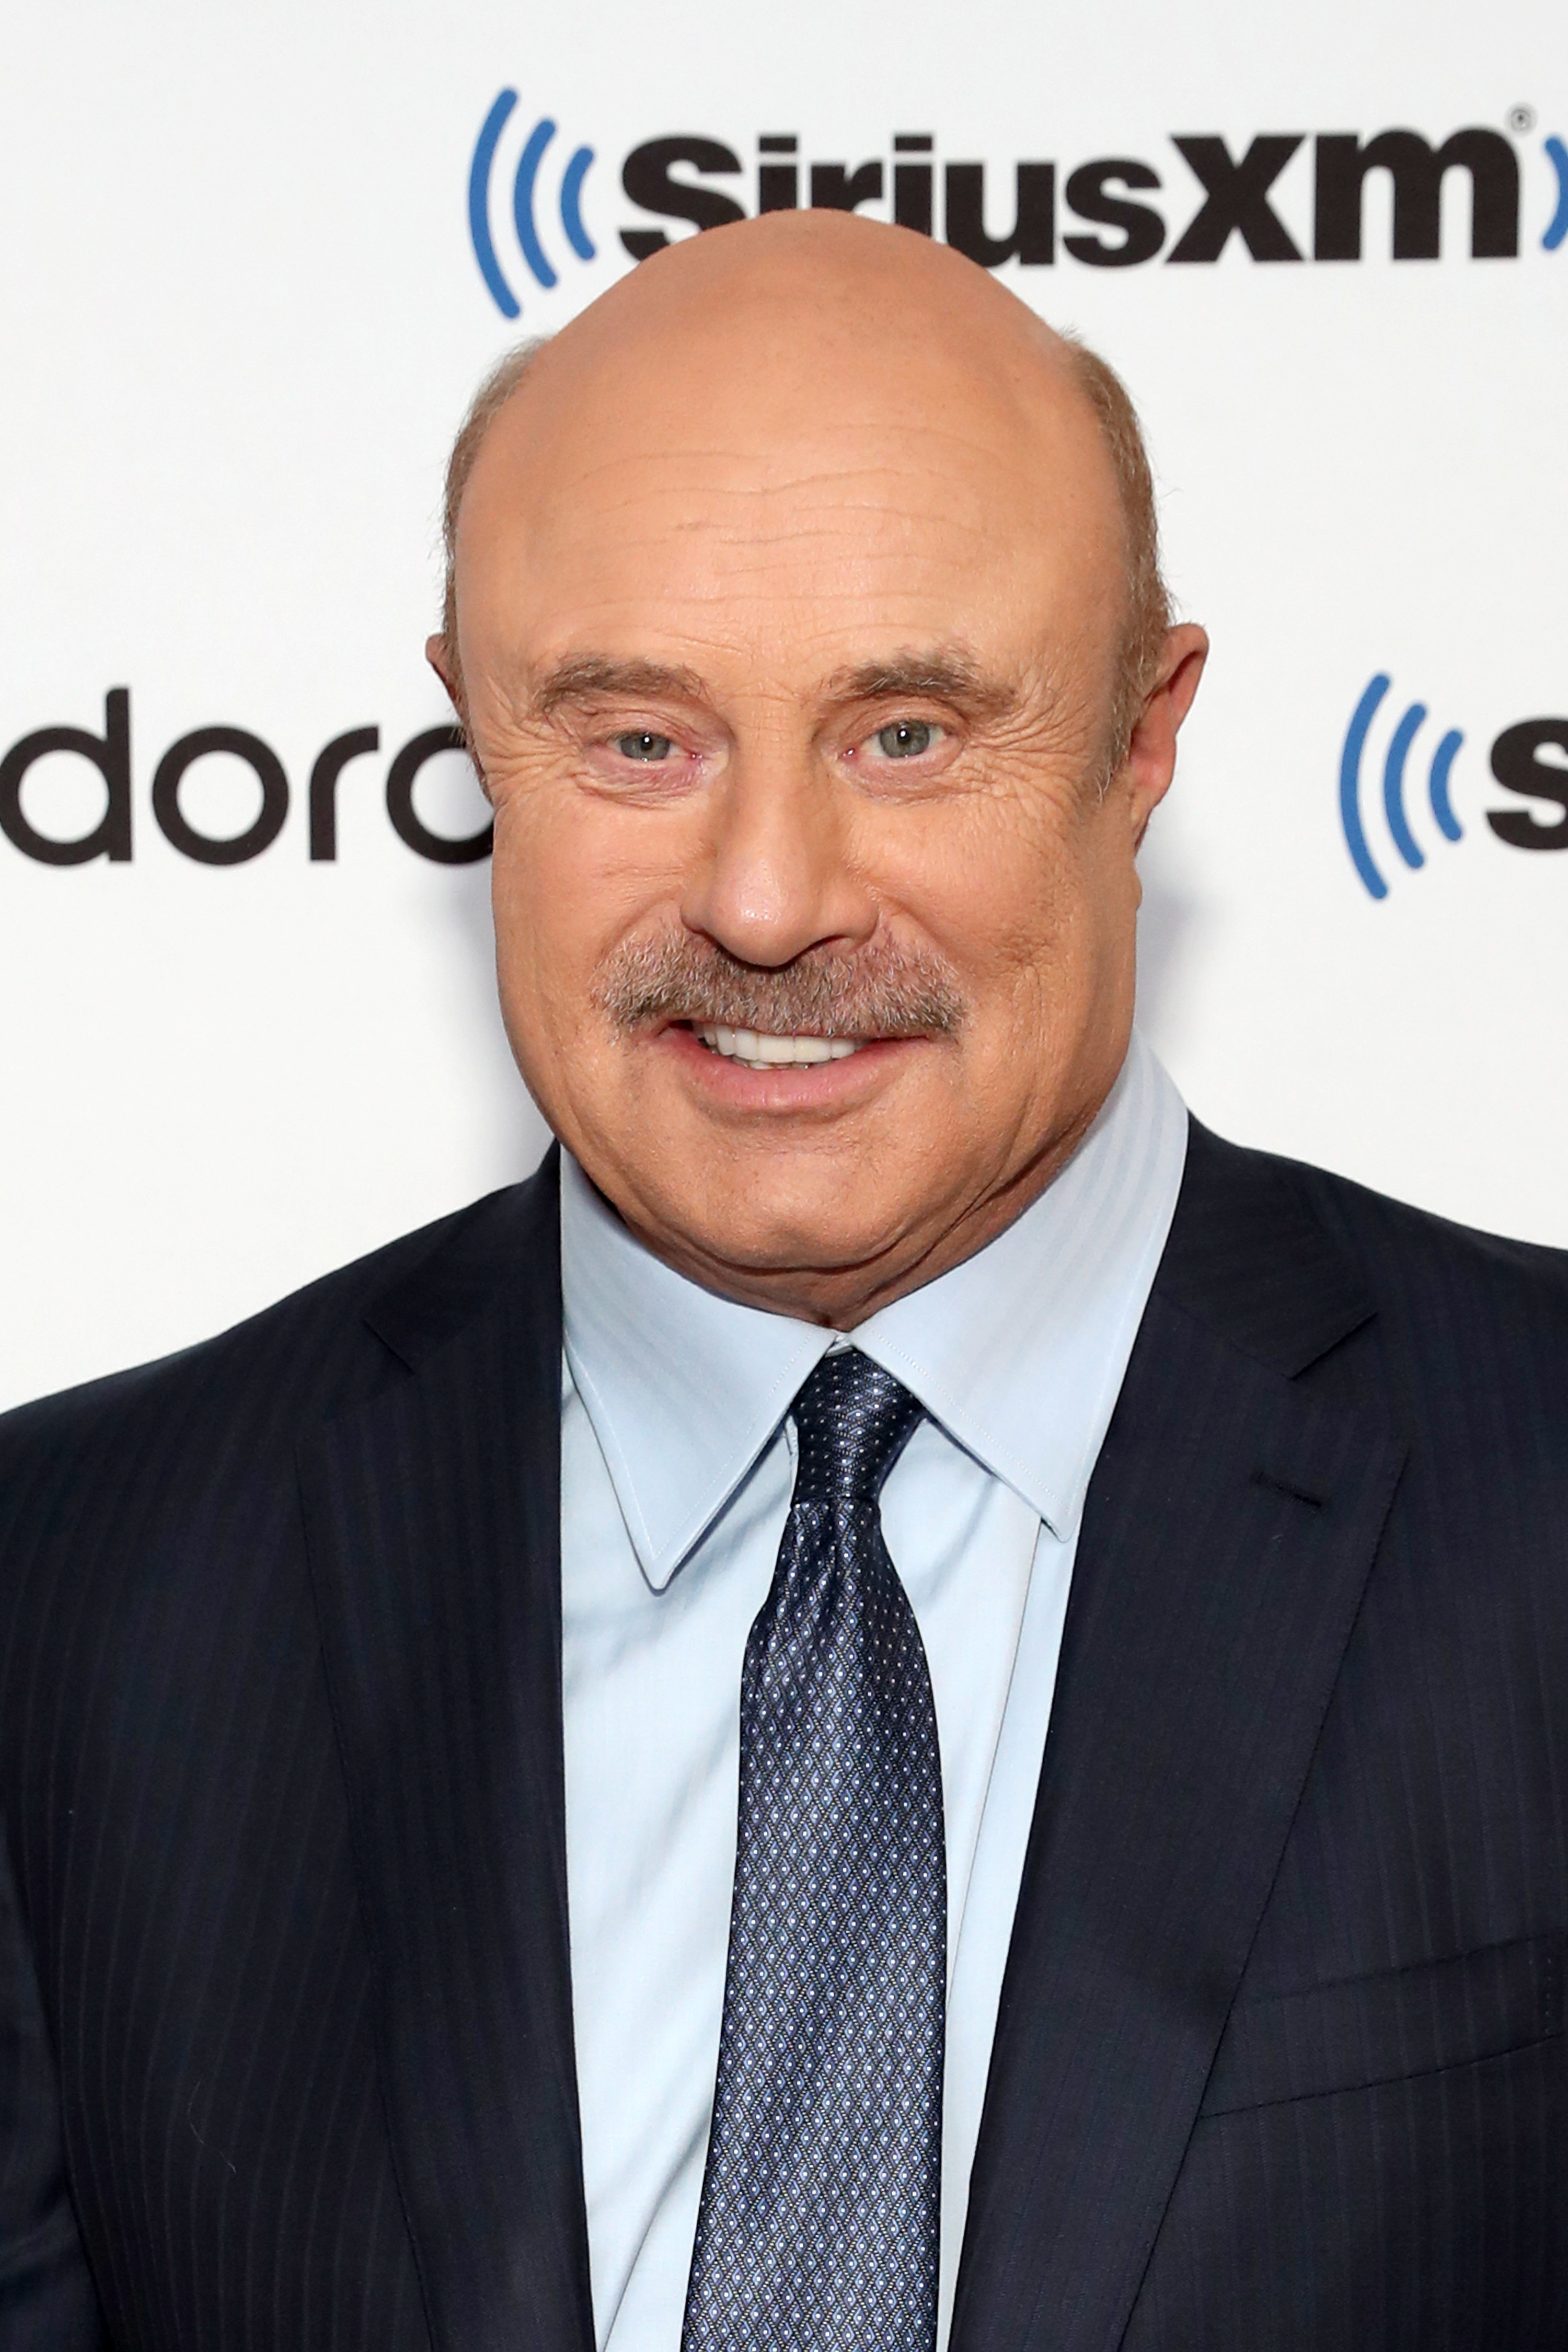 dr. phil in a suit